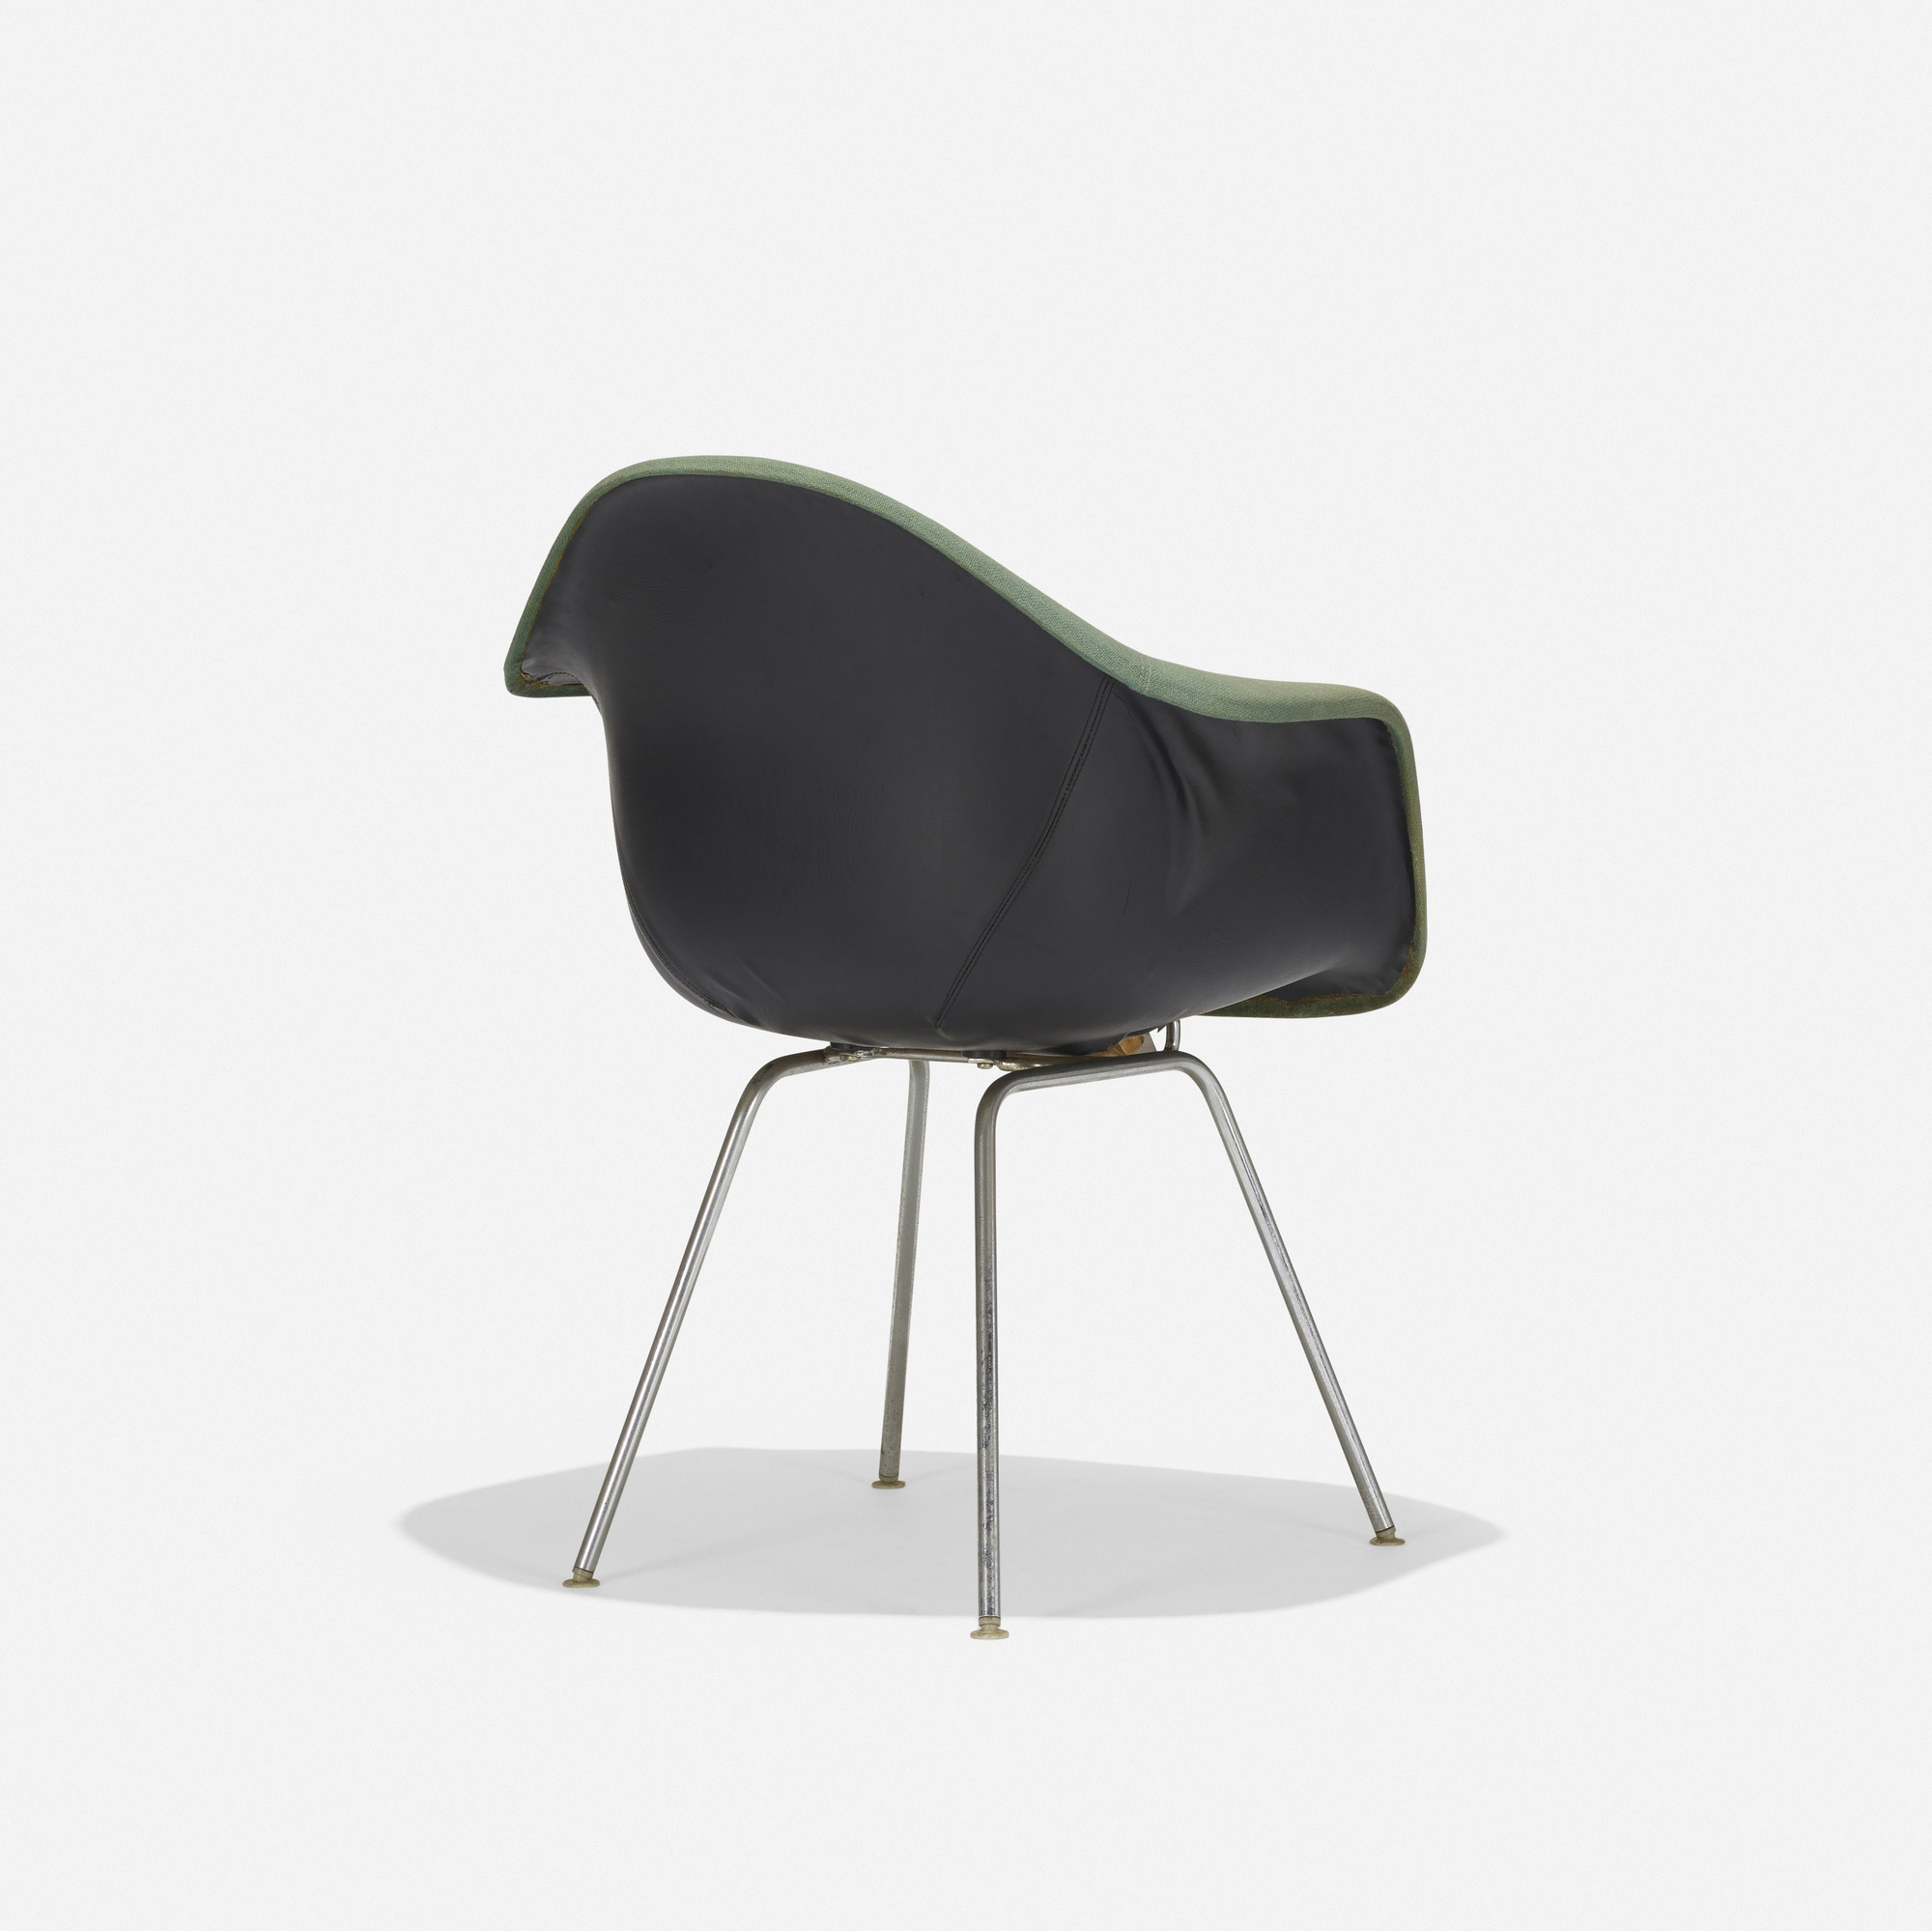 105: Charles and Ray Eames / DAX-1 (3 of 3)